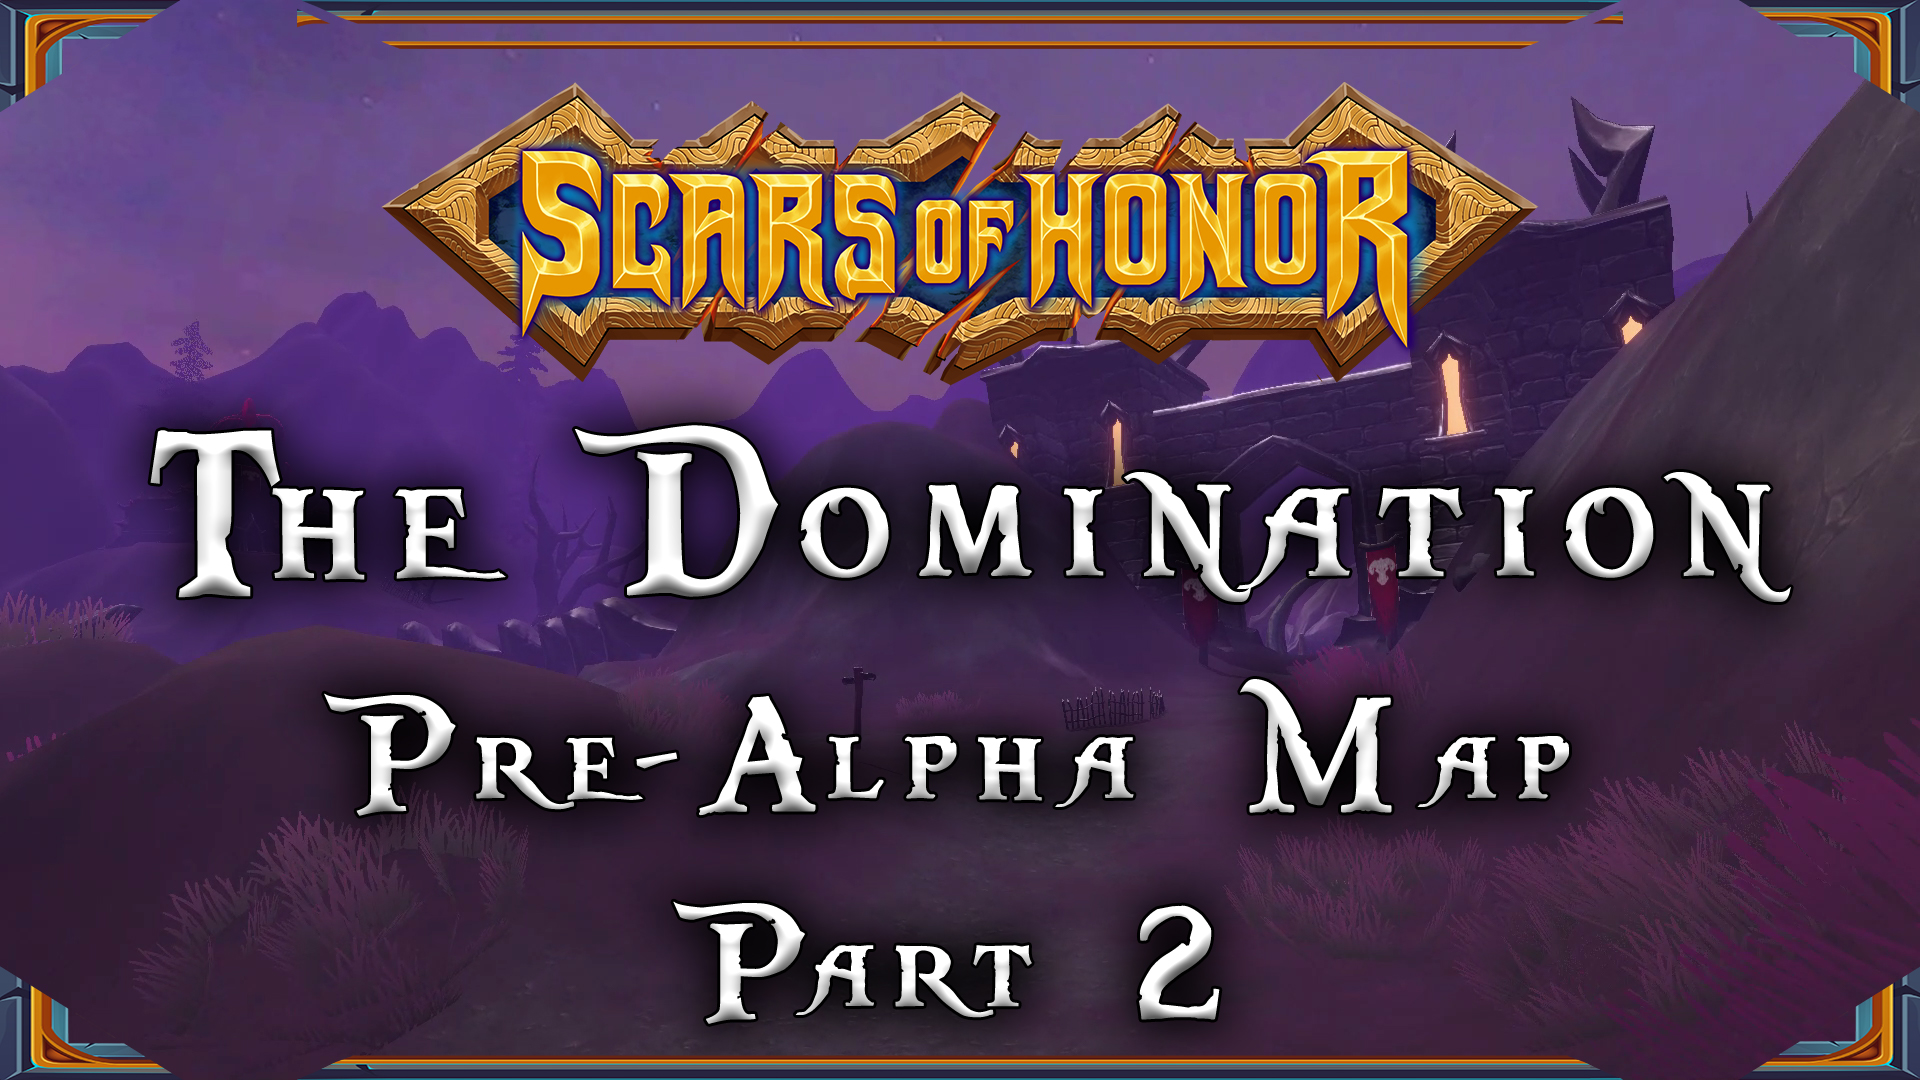 Pre-Alpha Map part 2 - The Domination